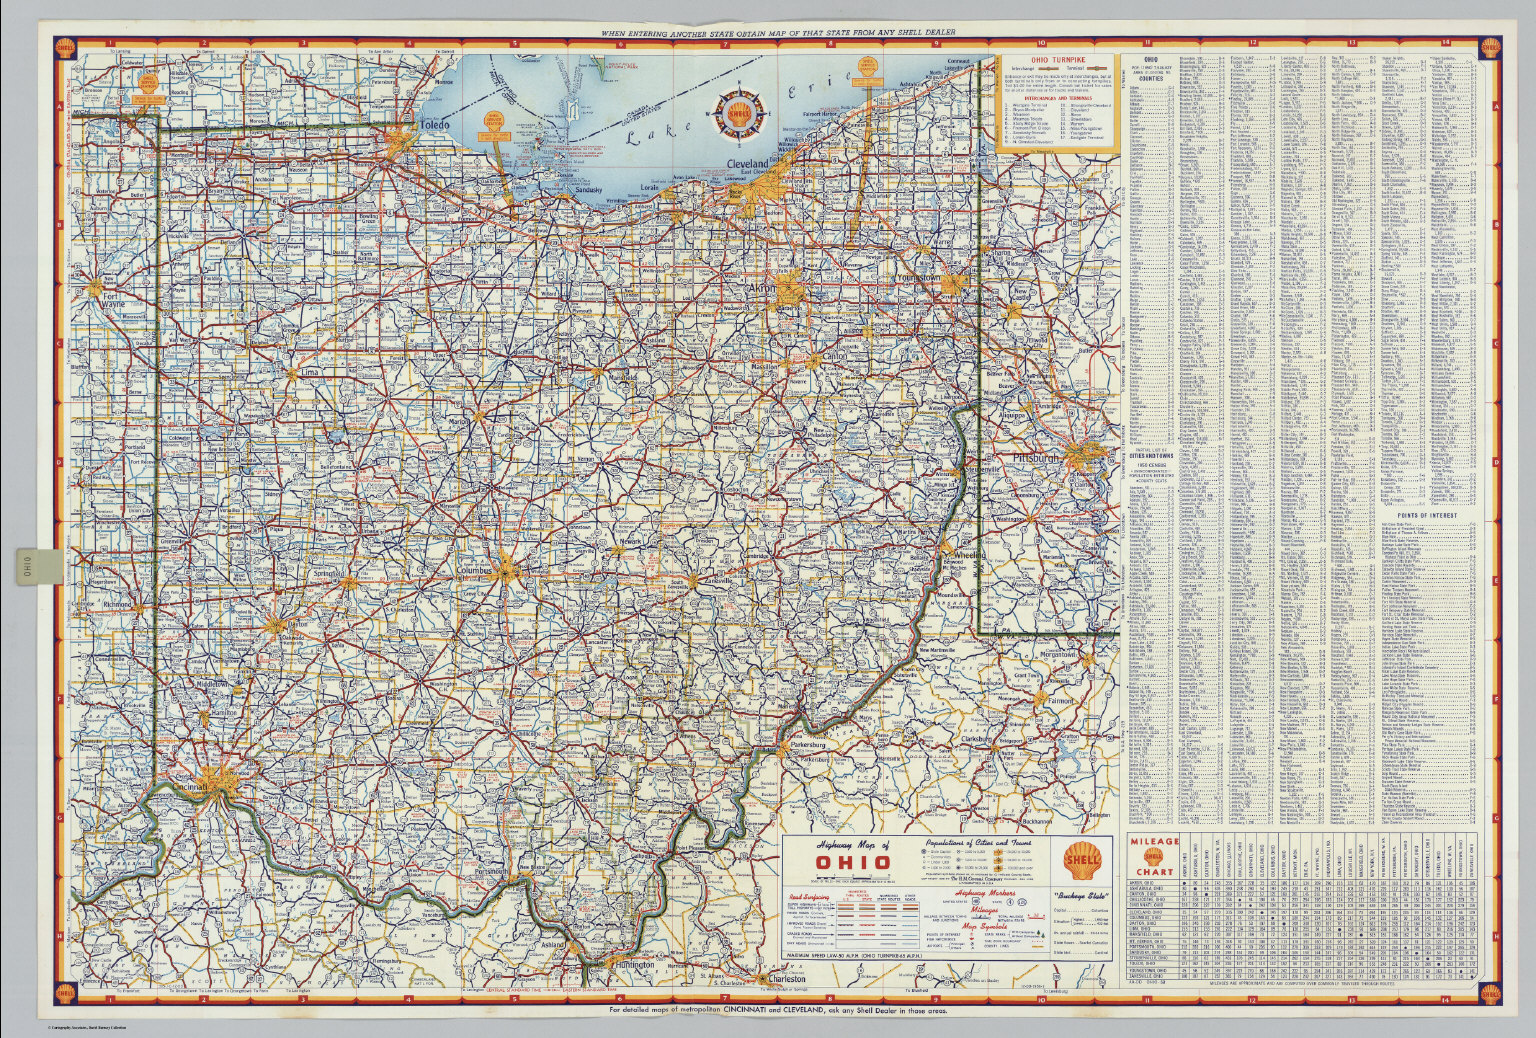 Shell Highway Map Of Ohio David Rumsey Historical Map Collection - Ohio road map